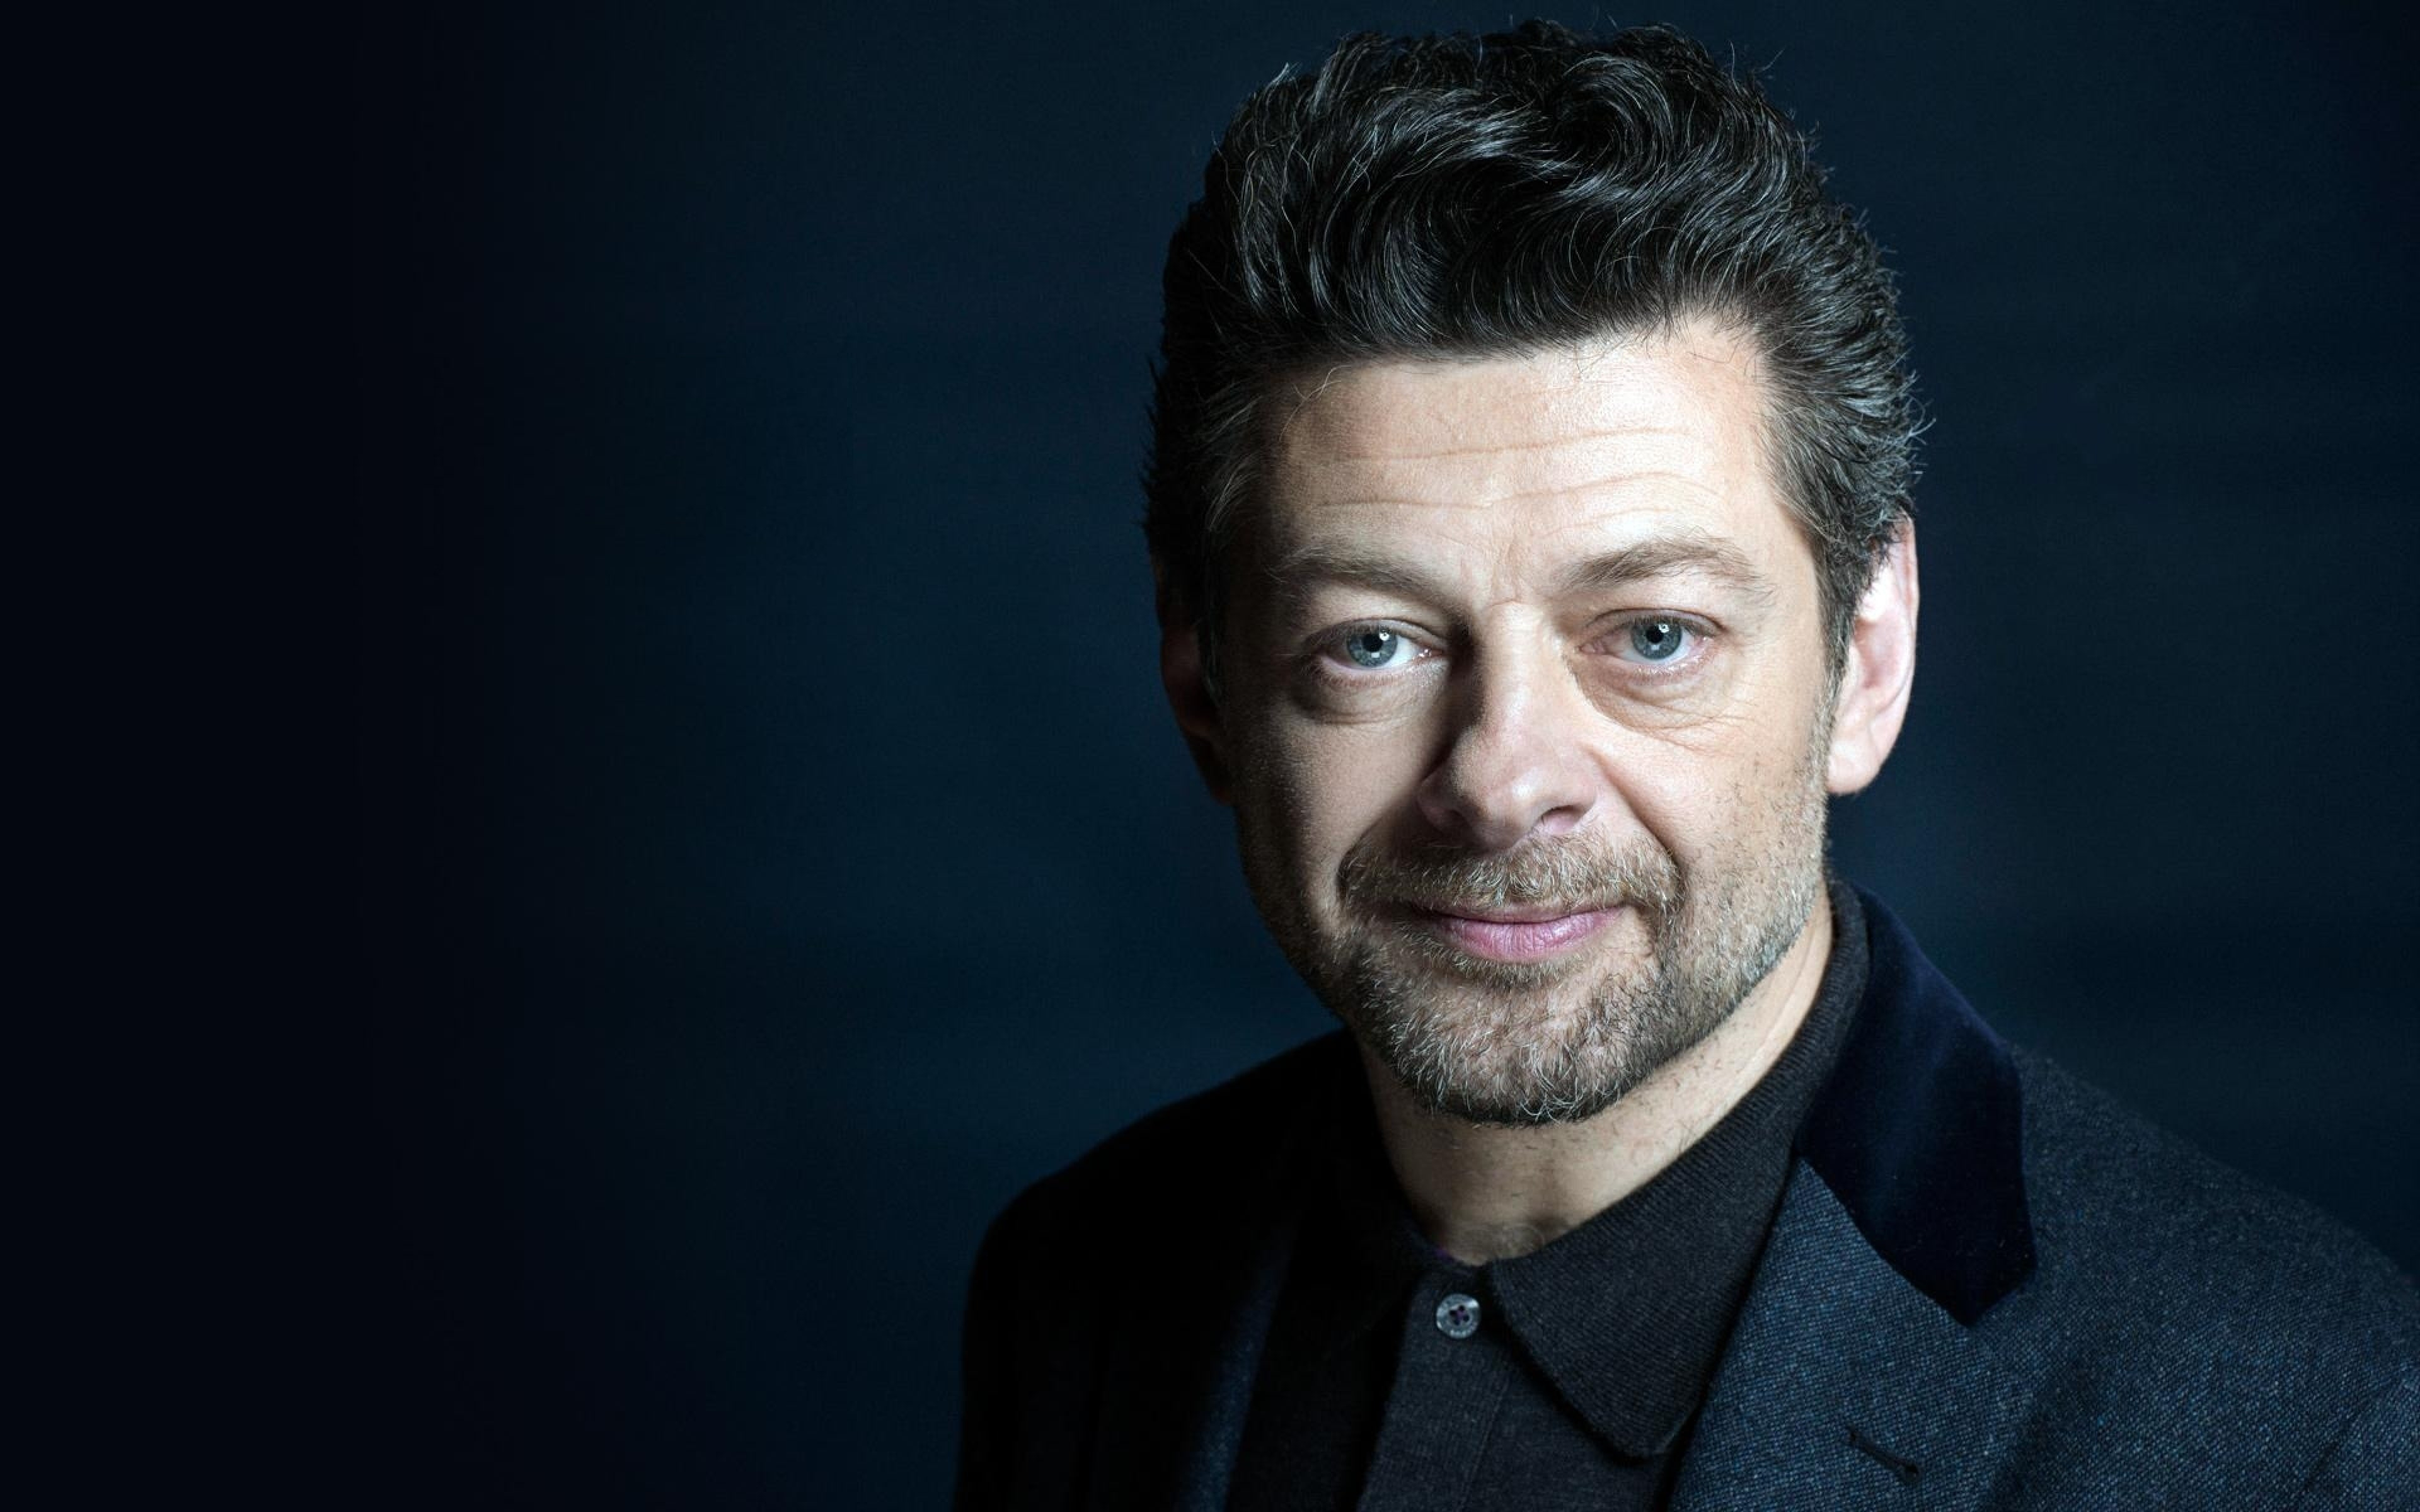 3840x2400 - Andy Serkis Wallpapers 1